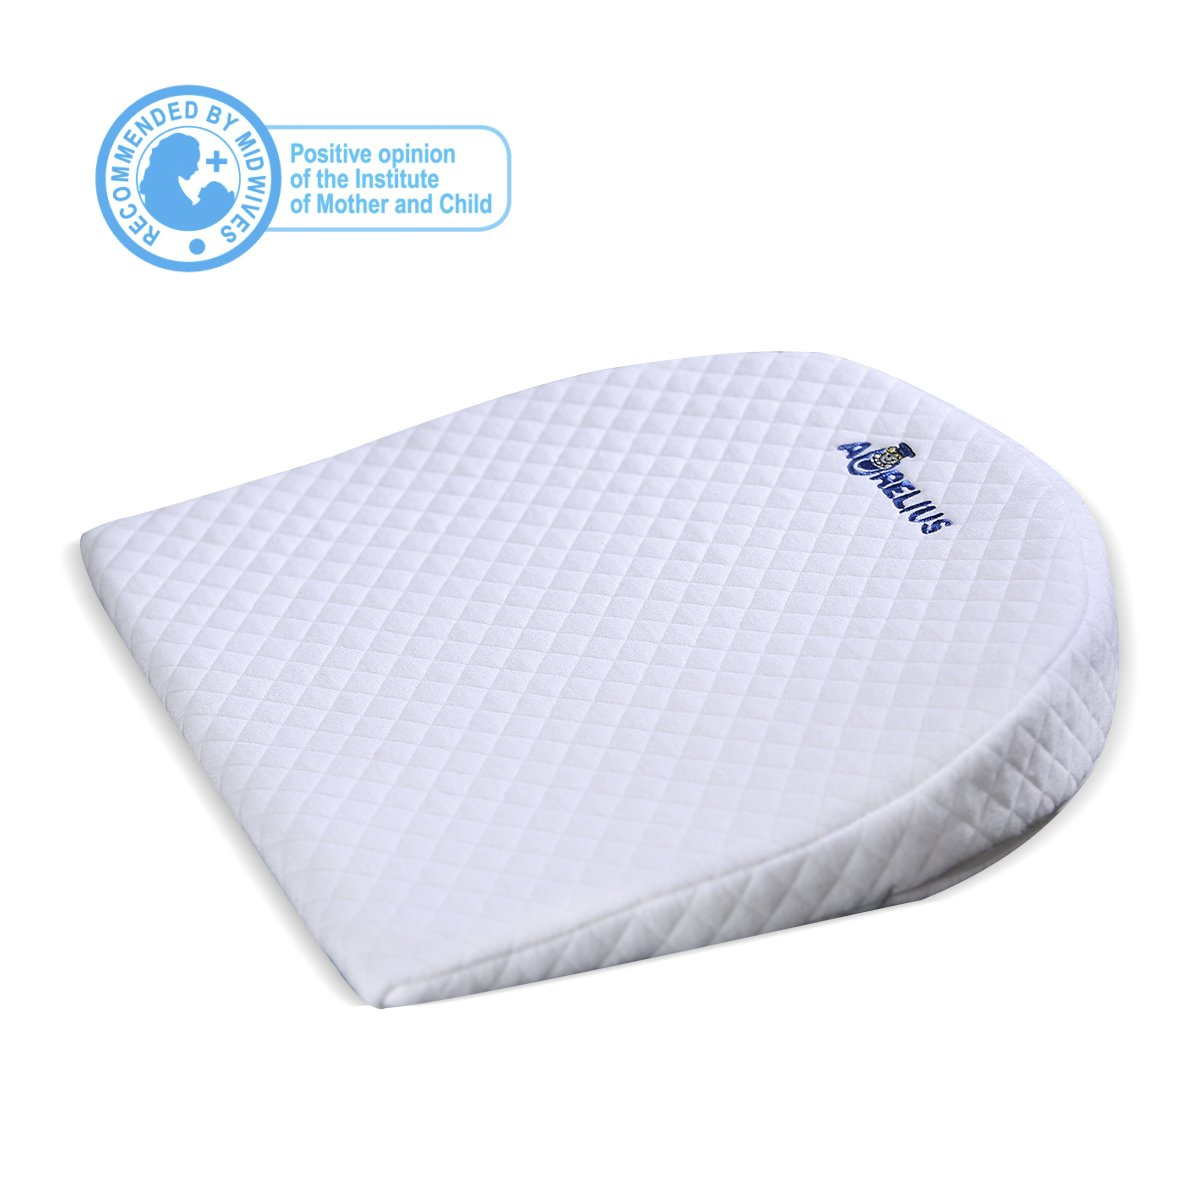 Aurelius Baby Sleep Pillow WaterProof Reflux Pillow Wedge 12Degree Incline,Anti-Reflux Colic Congestion For Universal Bassinet/Pram/Moses Basket/Stroller/Crib/Cot/Bed (White)